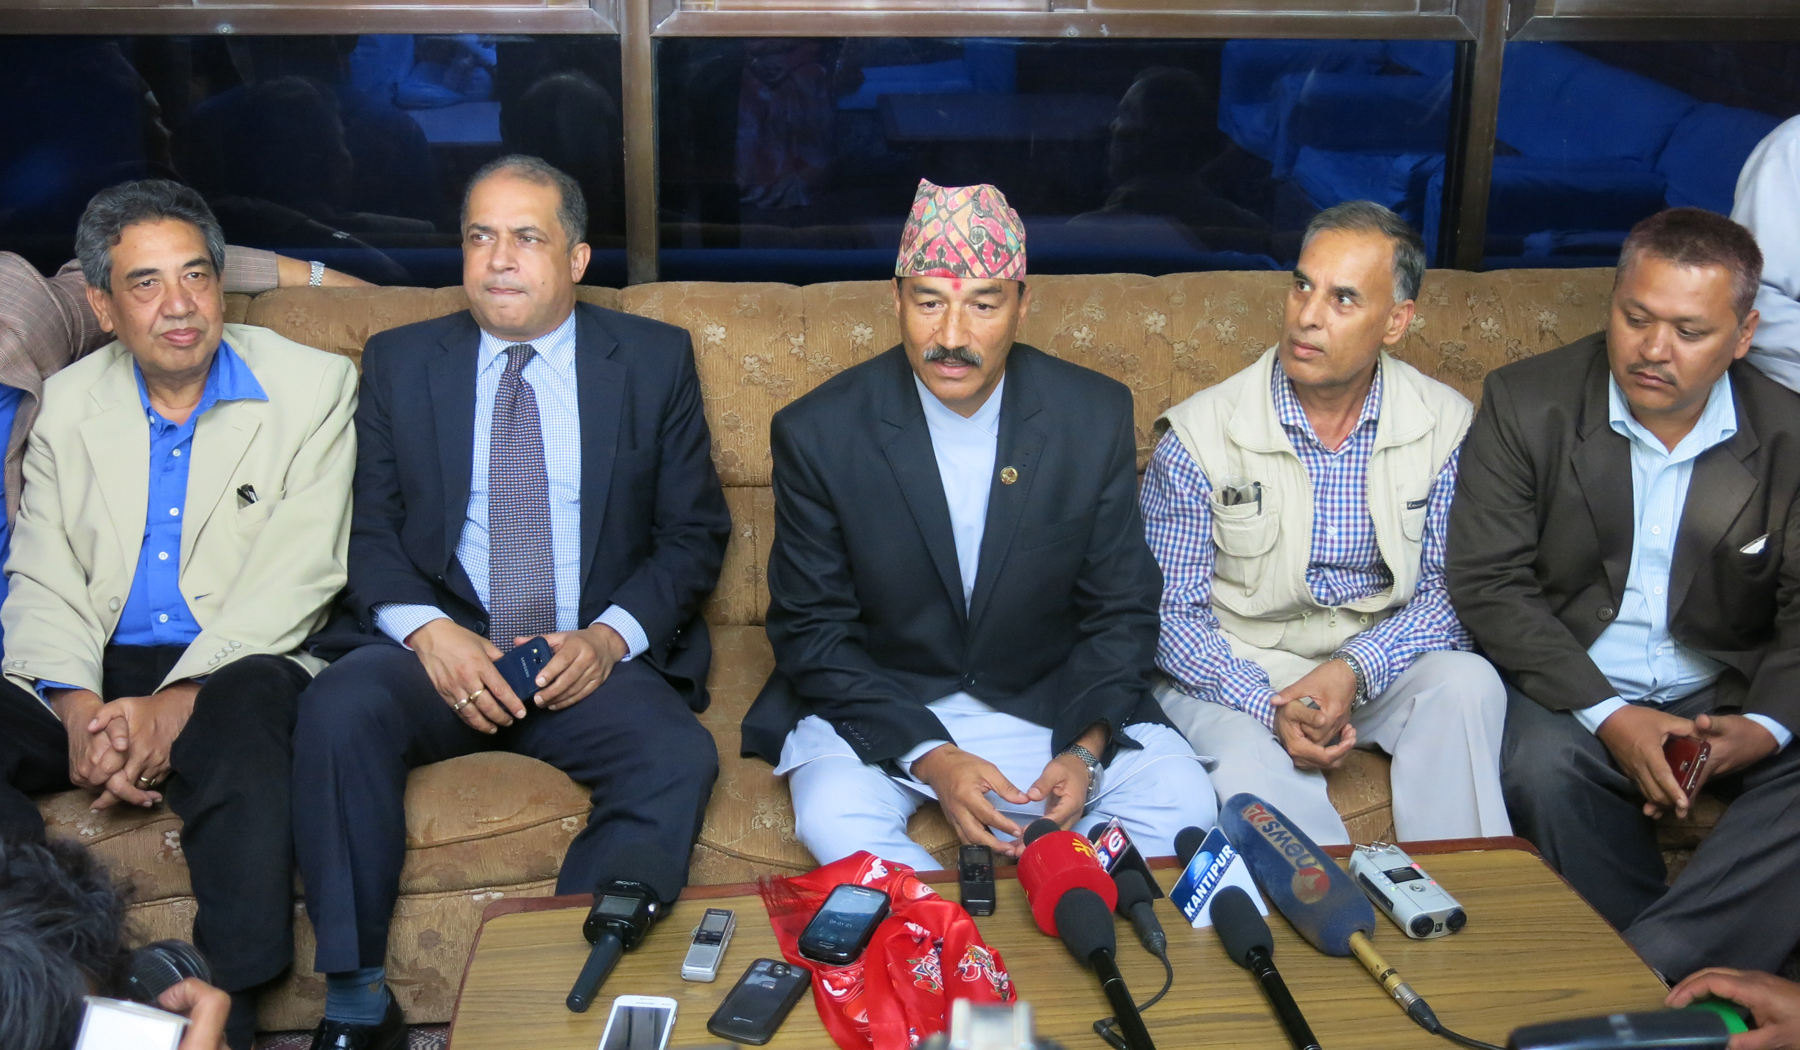 Deputy Prime Minister and Minister for Foreign Affairs Kamal Thapa talking to mediapersons after his return from New Delhi, at Tribhuvan International Airport, in Kathmandu, on Monday, October 19, 2015. Photo: RSS